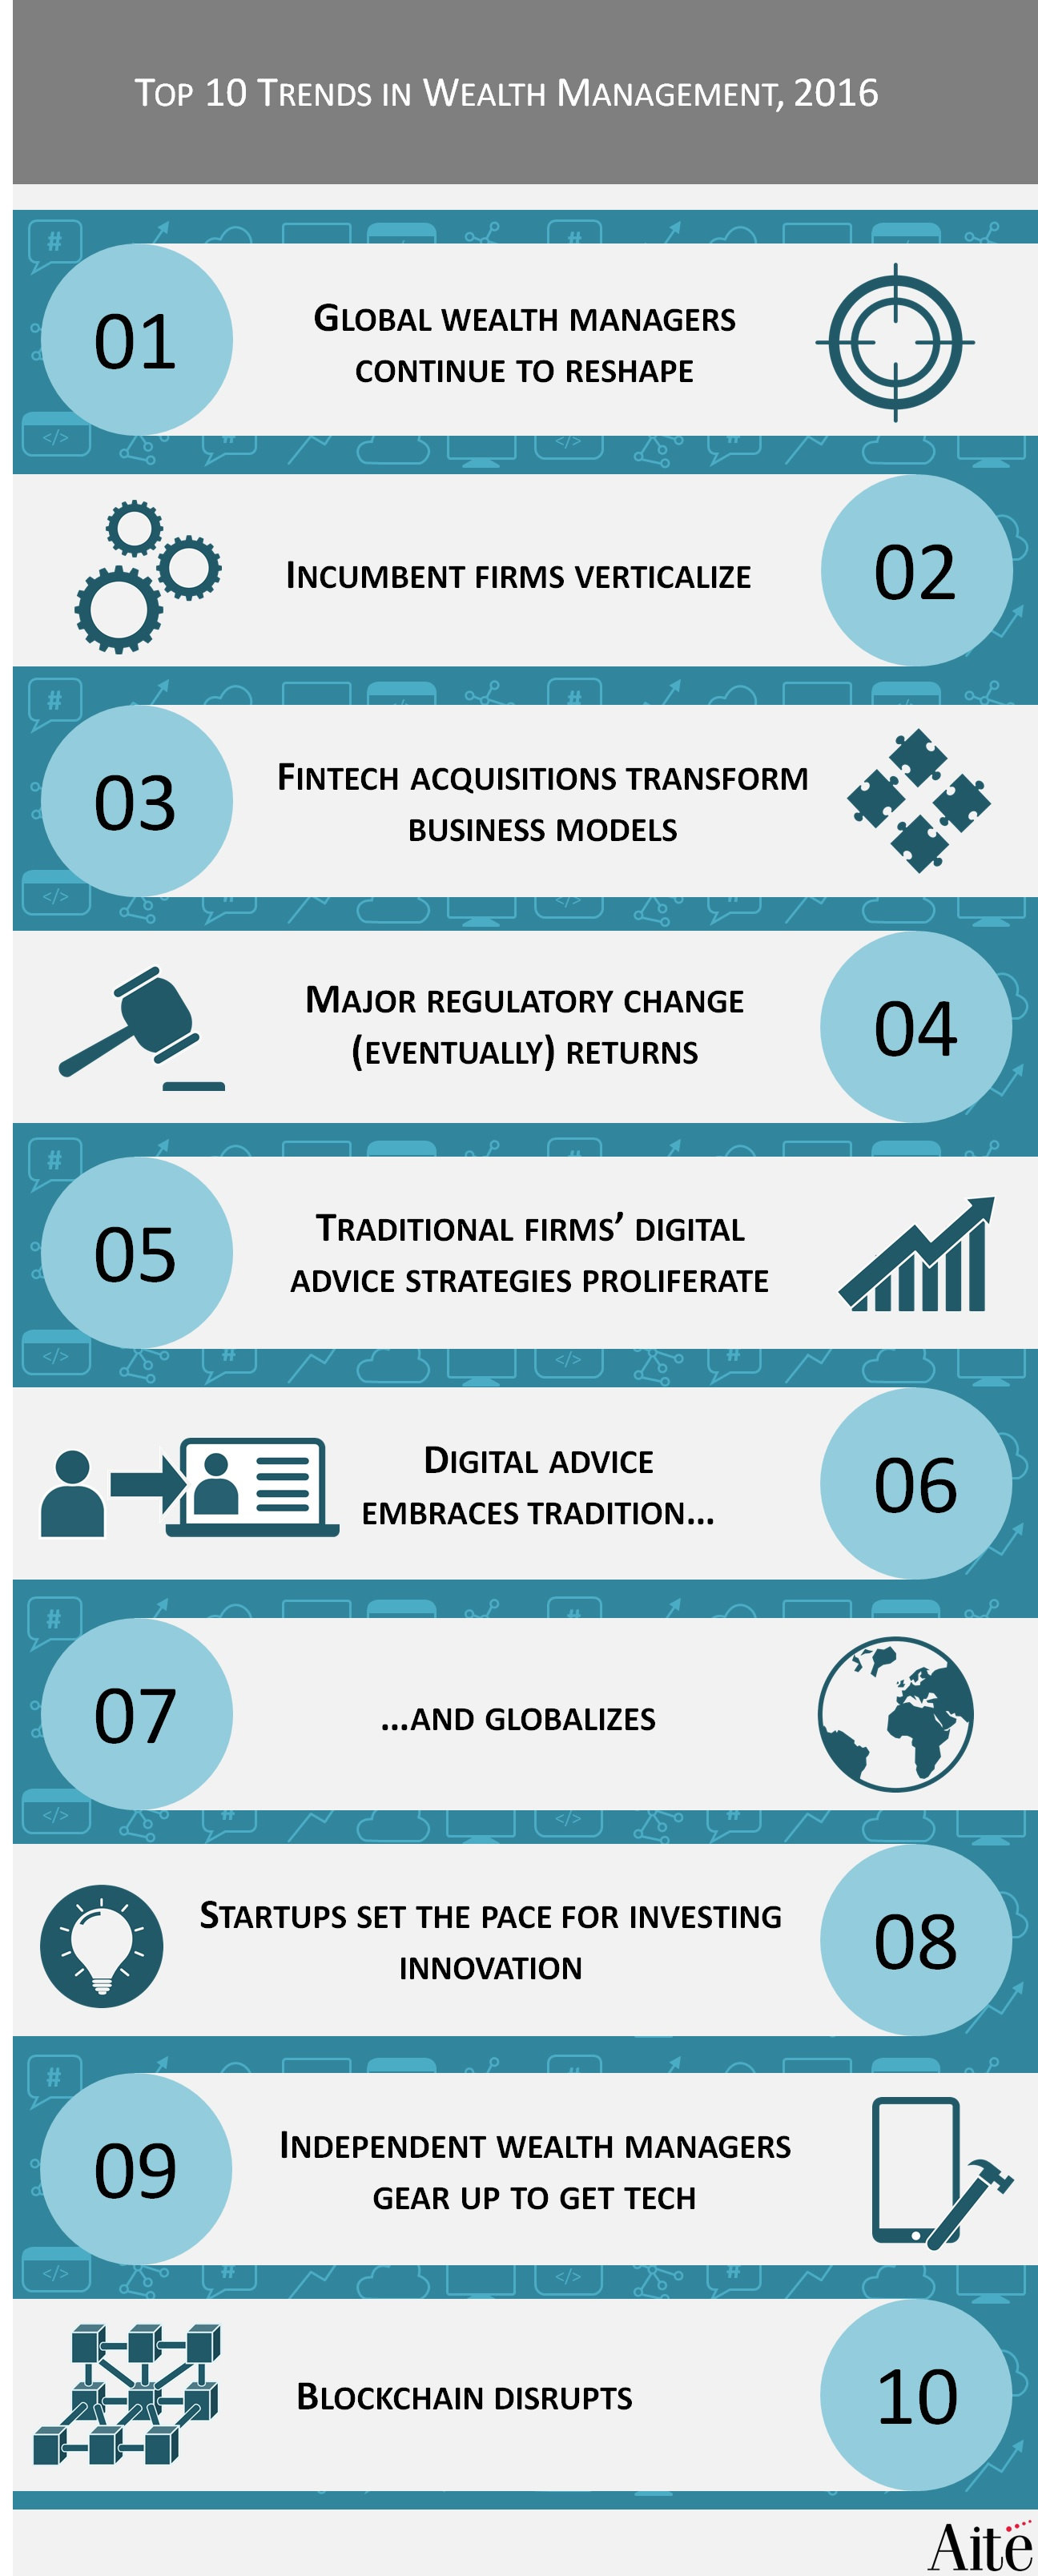 Top 10 Trends in Wealth Management, 2016: From Digital Advice to ...